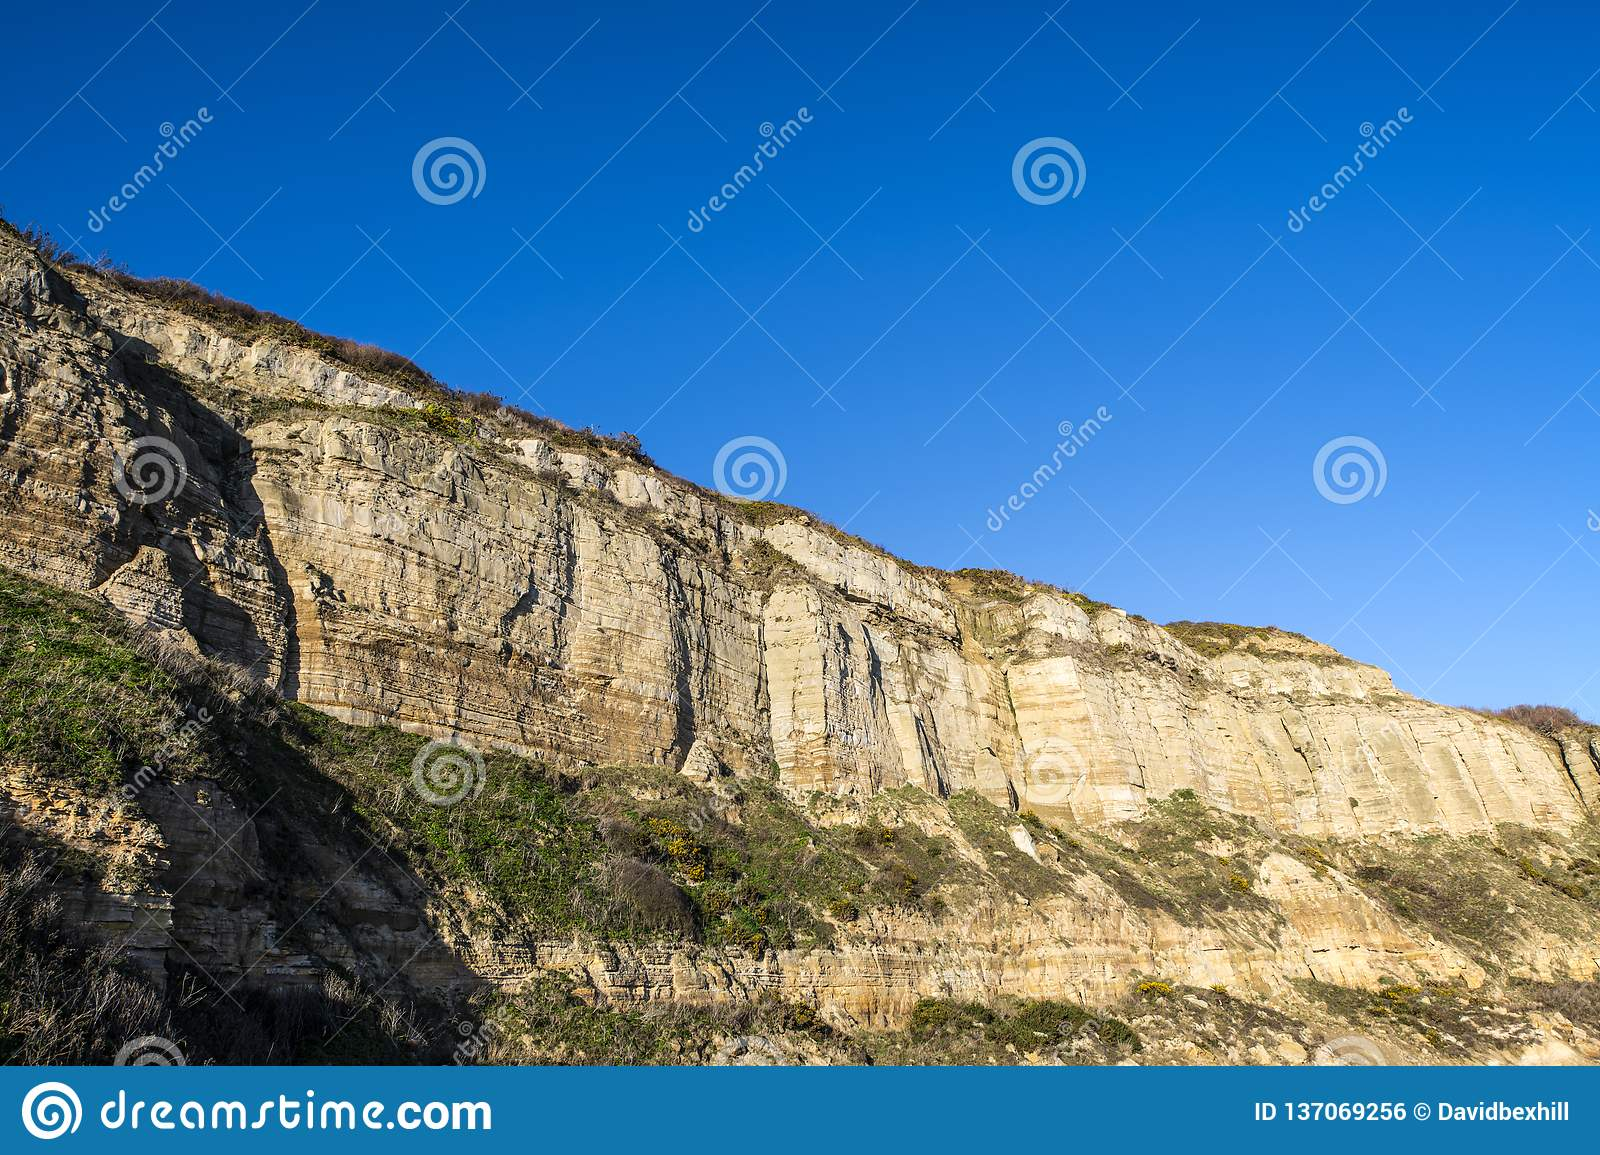 Crtaceous Sandstone Cliffs at Hastings in East Sussex, England